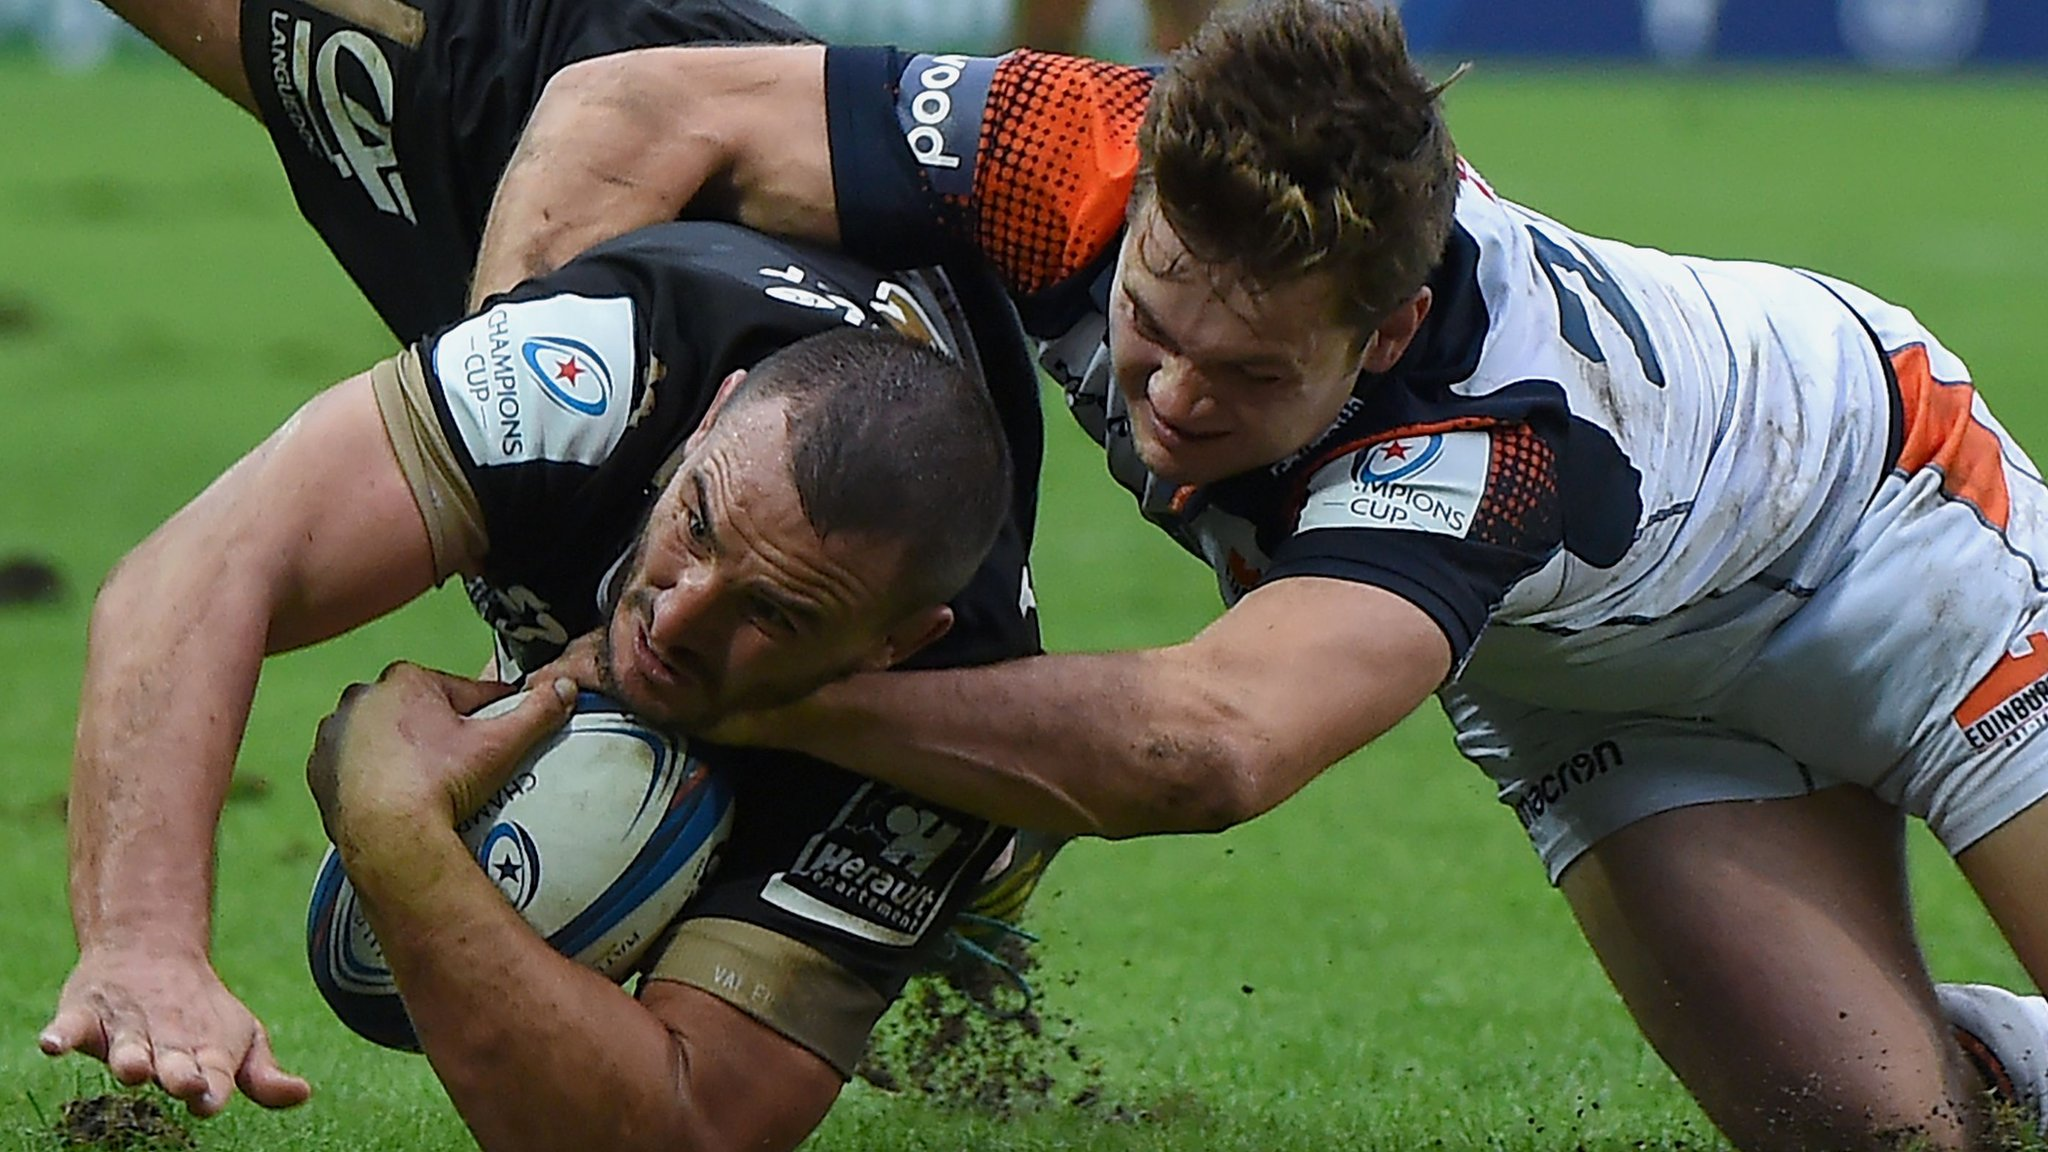 Edinburgh '100%' should have beaten Montpellier in Champions Cup - Richard Cockerill